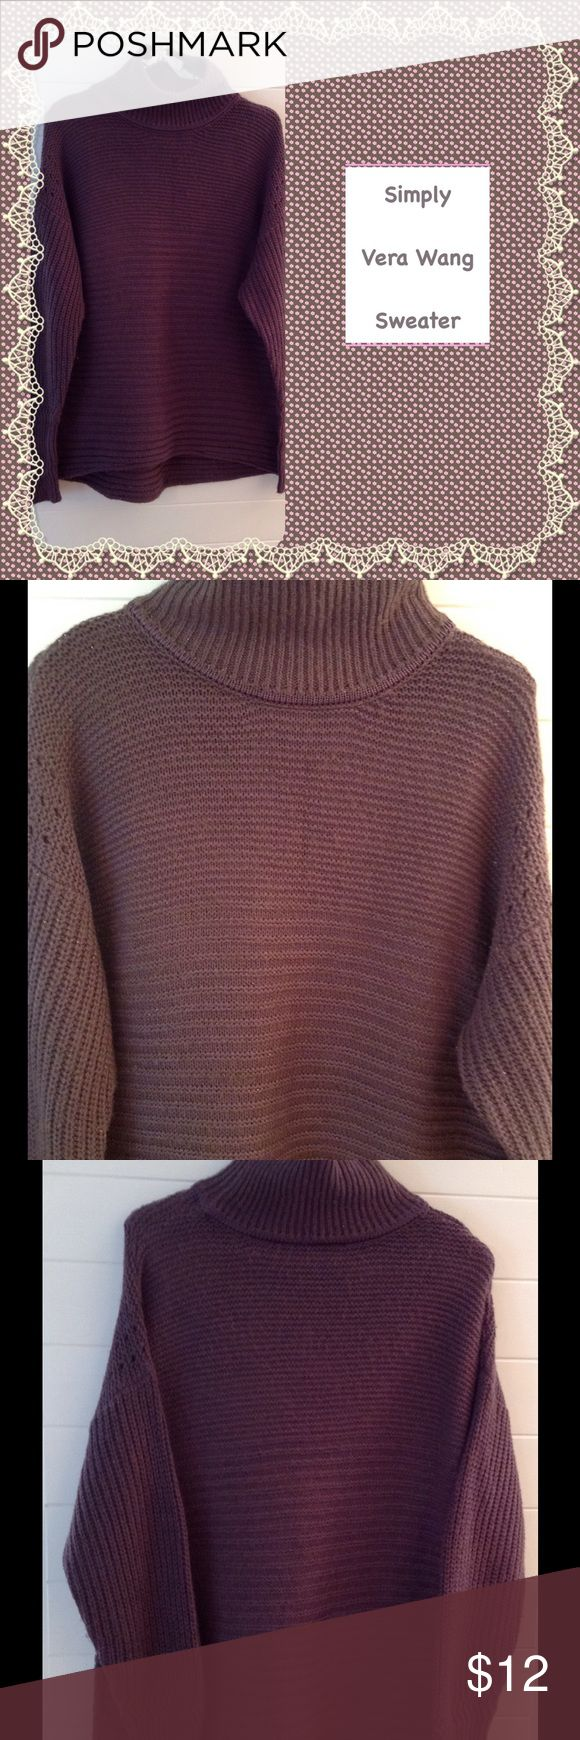 """Simply Vera Wang Relaxed Turtleneck Sweater Simply Vera Wang Sweater.  Relaxed turtleneck.  Nice texture/ribbing.  Acrylic/Cotton.  Length is 29"""".  Pretty plum color. Simply Vera Vera Wang Sweaters Cowl & Turtlenecks"""